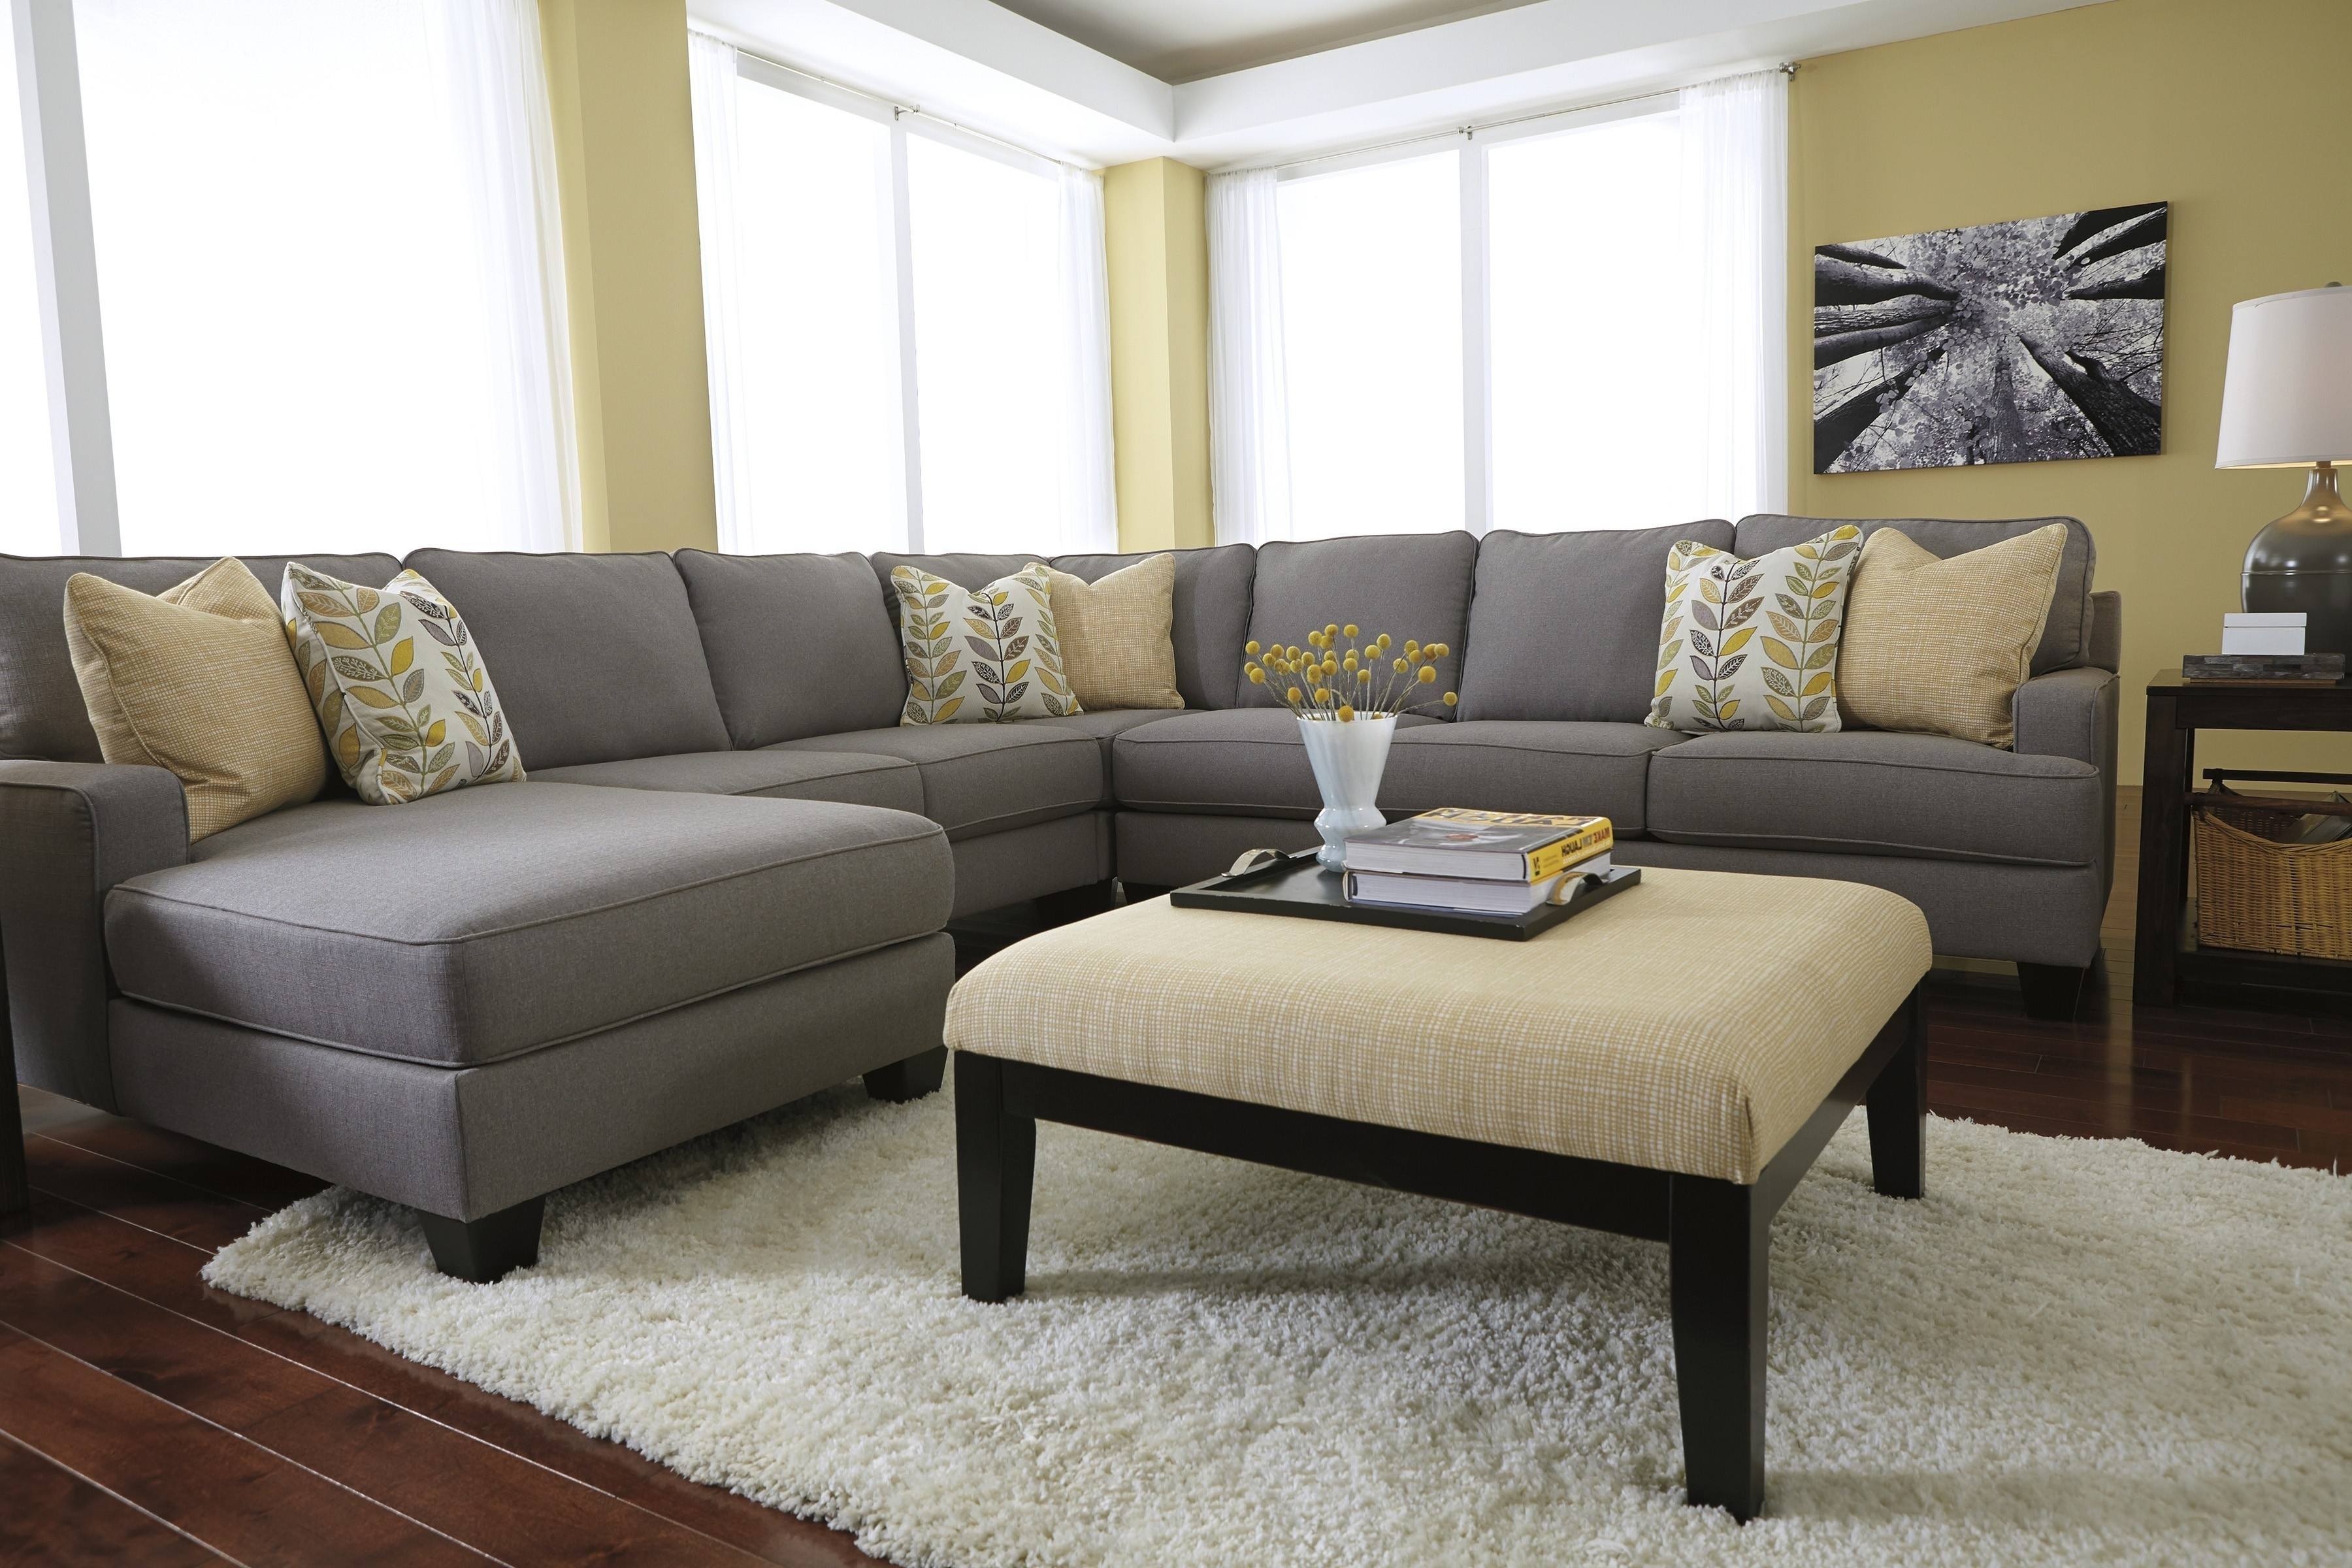 Most Recently Released Cool Perfect Light Grey Sectional Sofa 49 With Additional Small Intended For Small Sectional Sofas With Chaise And Ottoman (View 3 of 20)